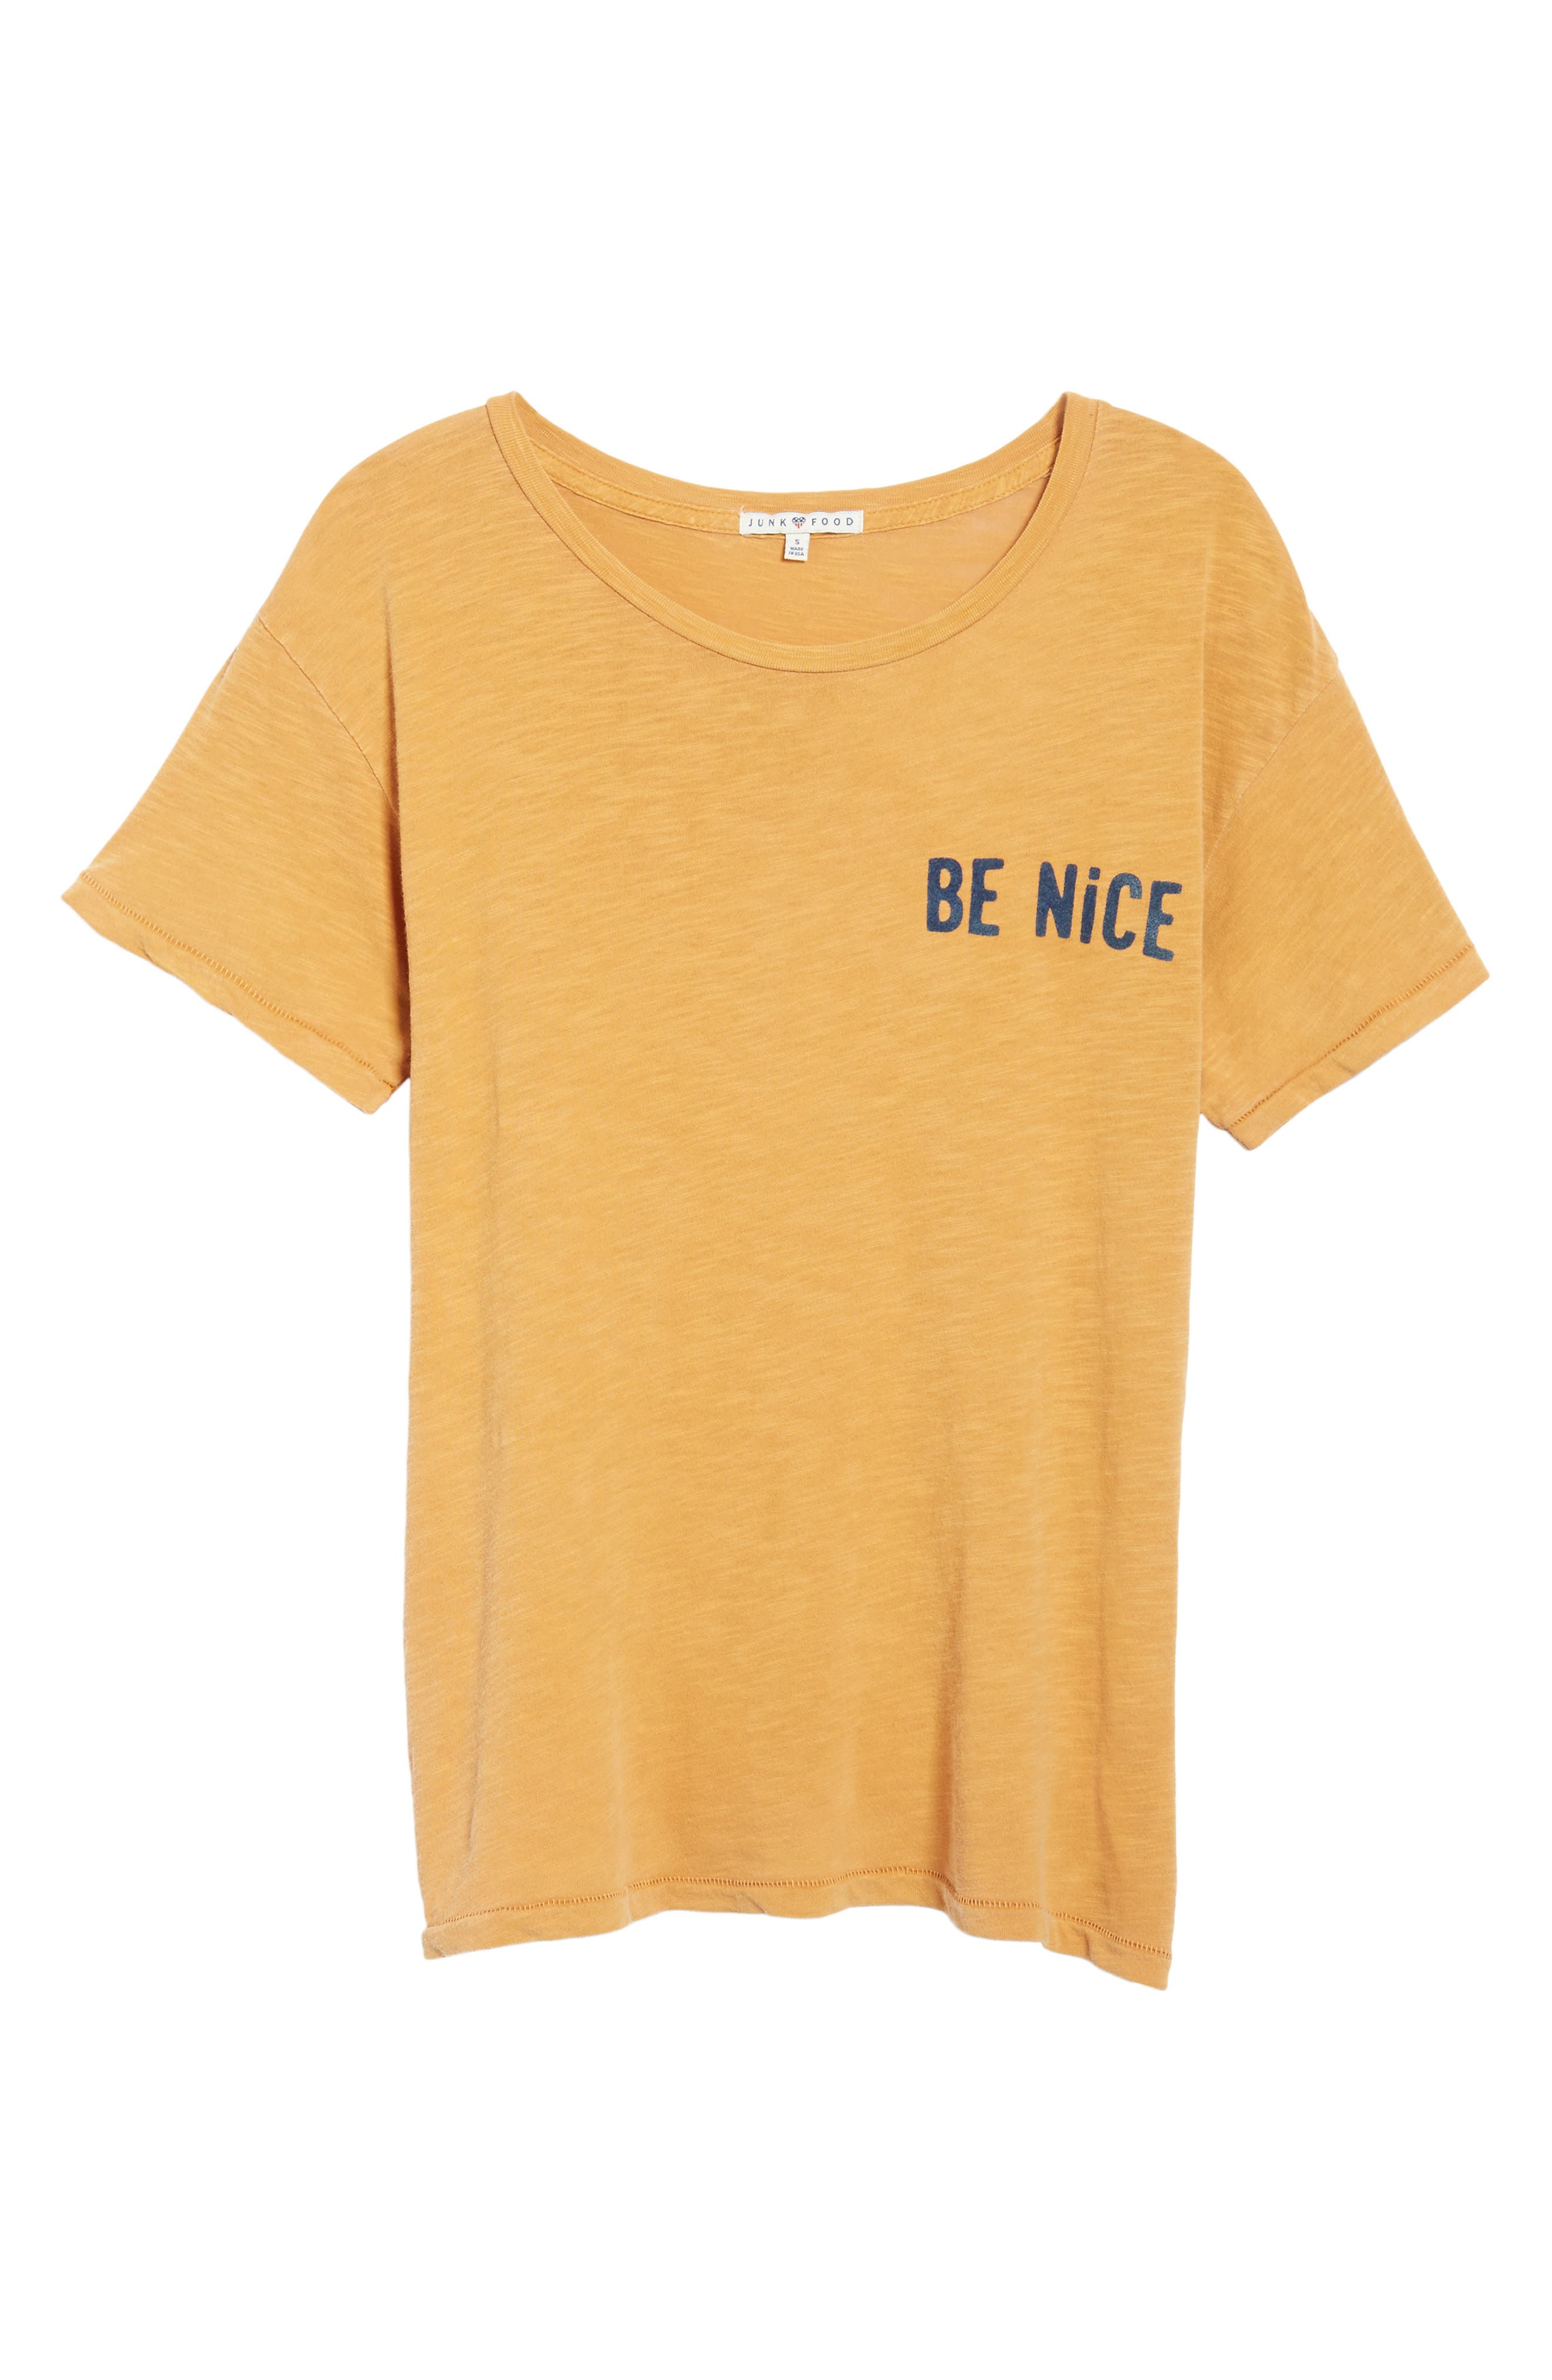 Be Nice Tee,                             Alternate thumbnail 6, color,                             706